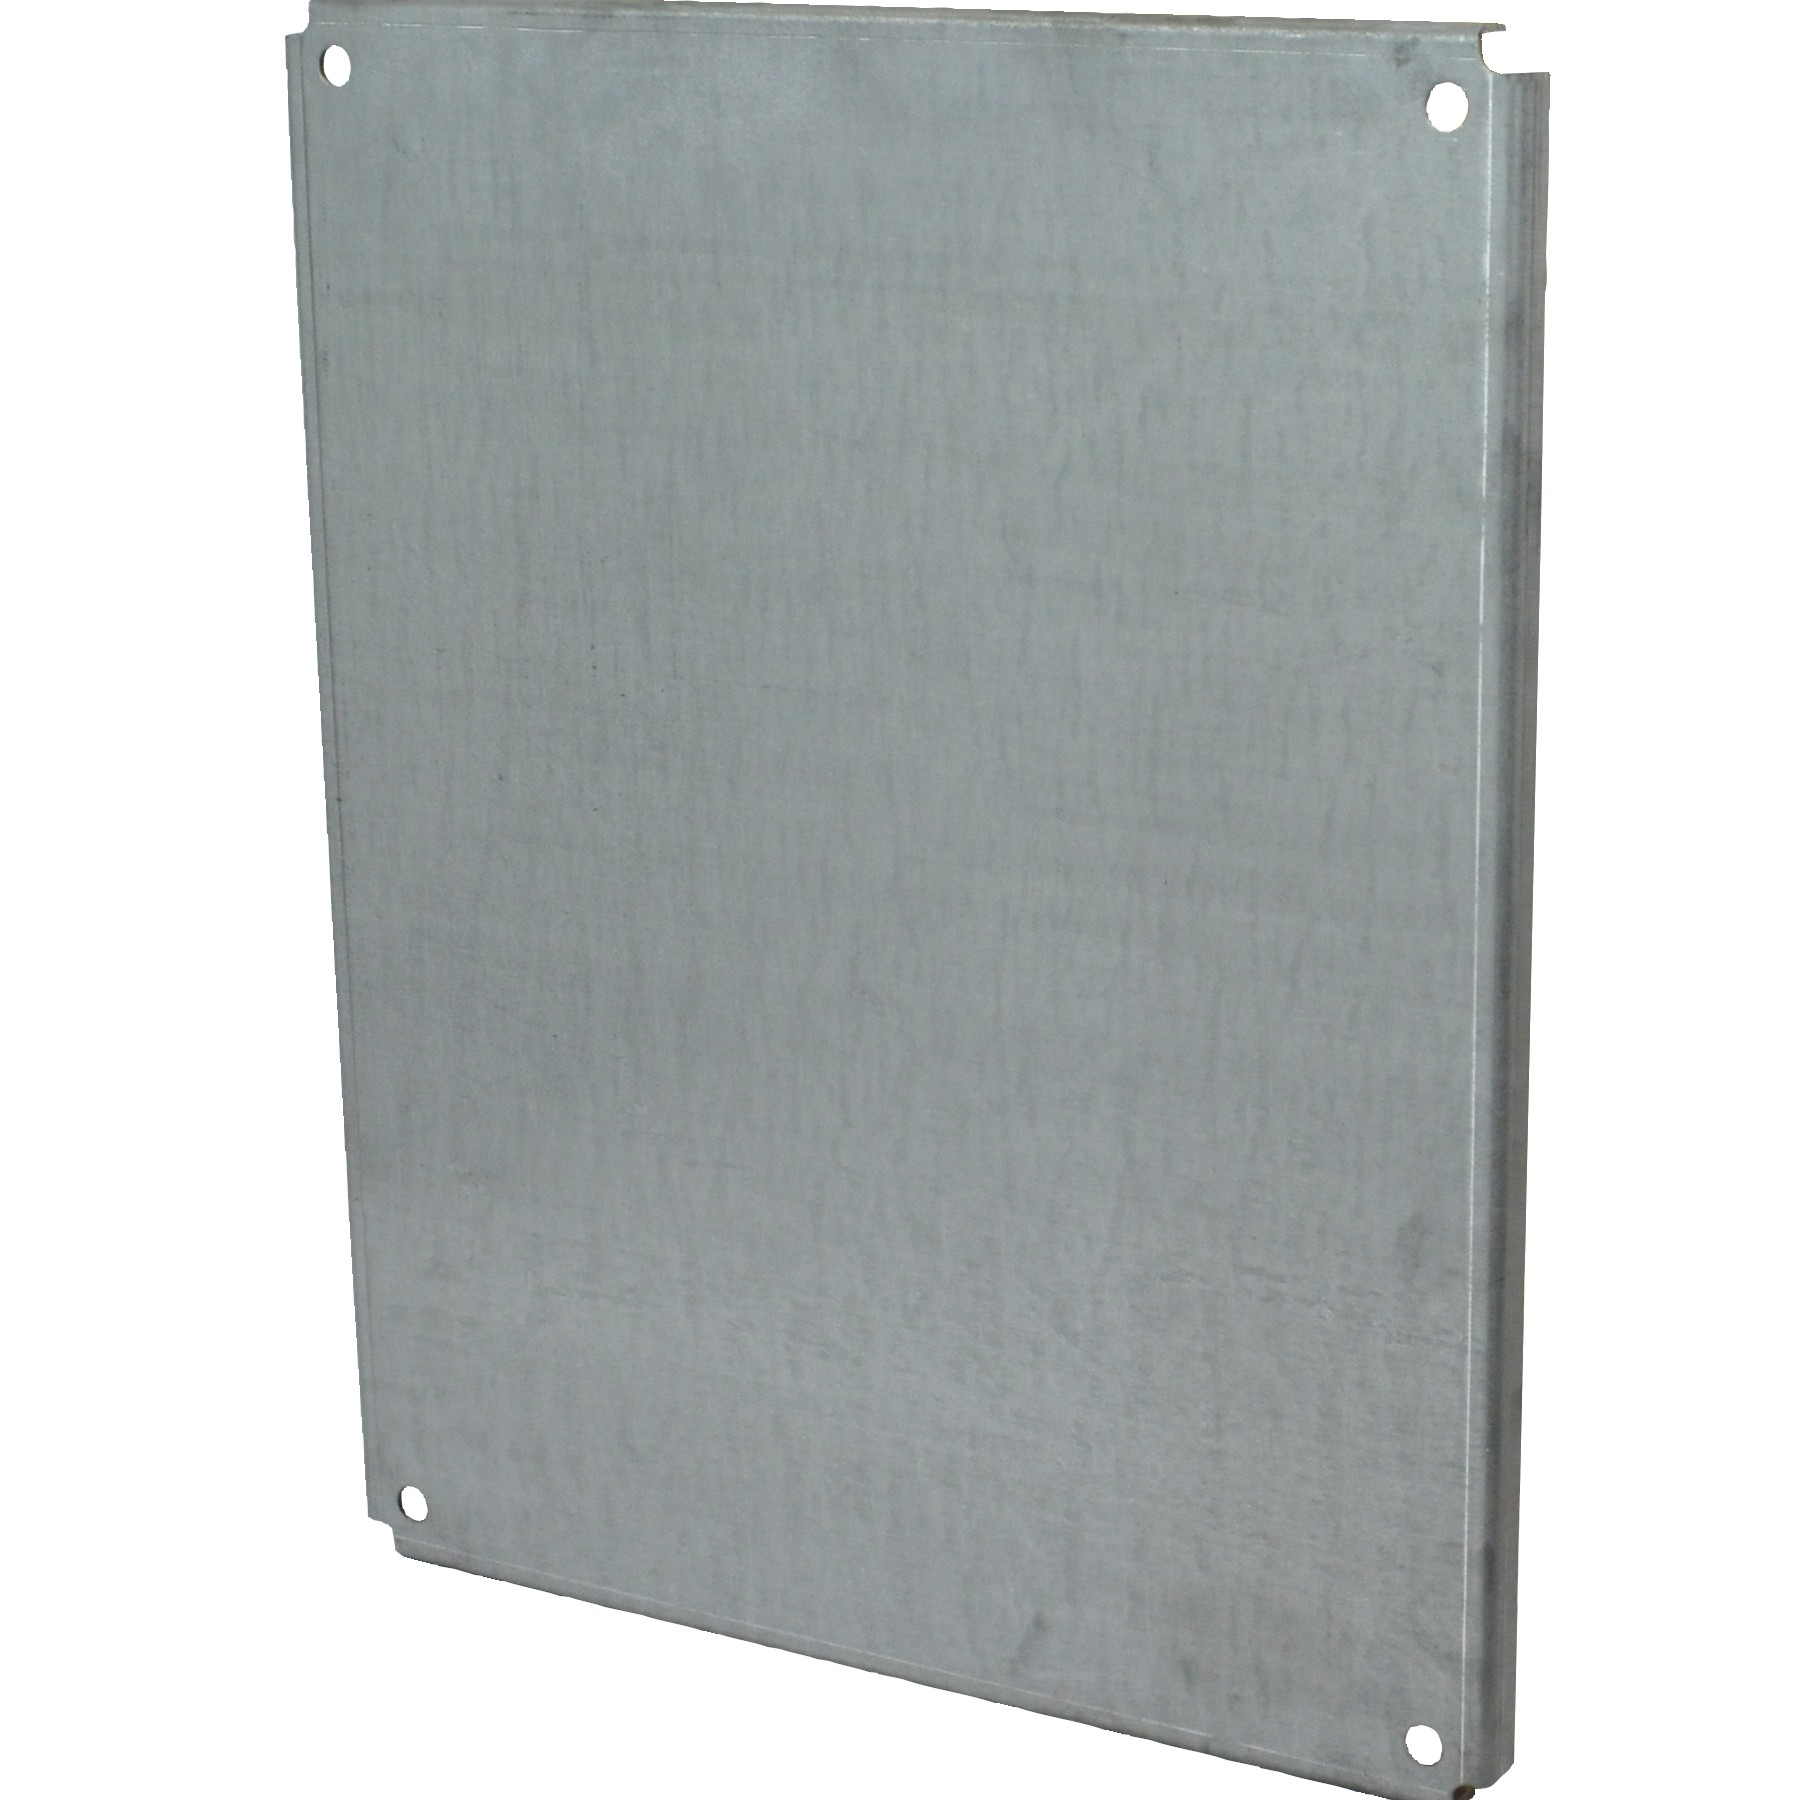 "Galvanized Back Panel for 24"" x 20"" Enclosures"